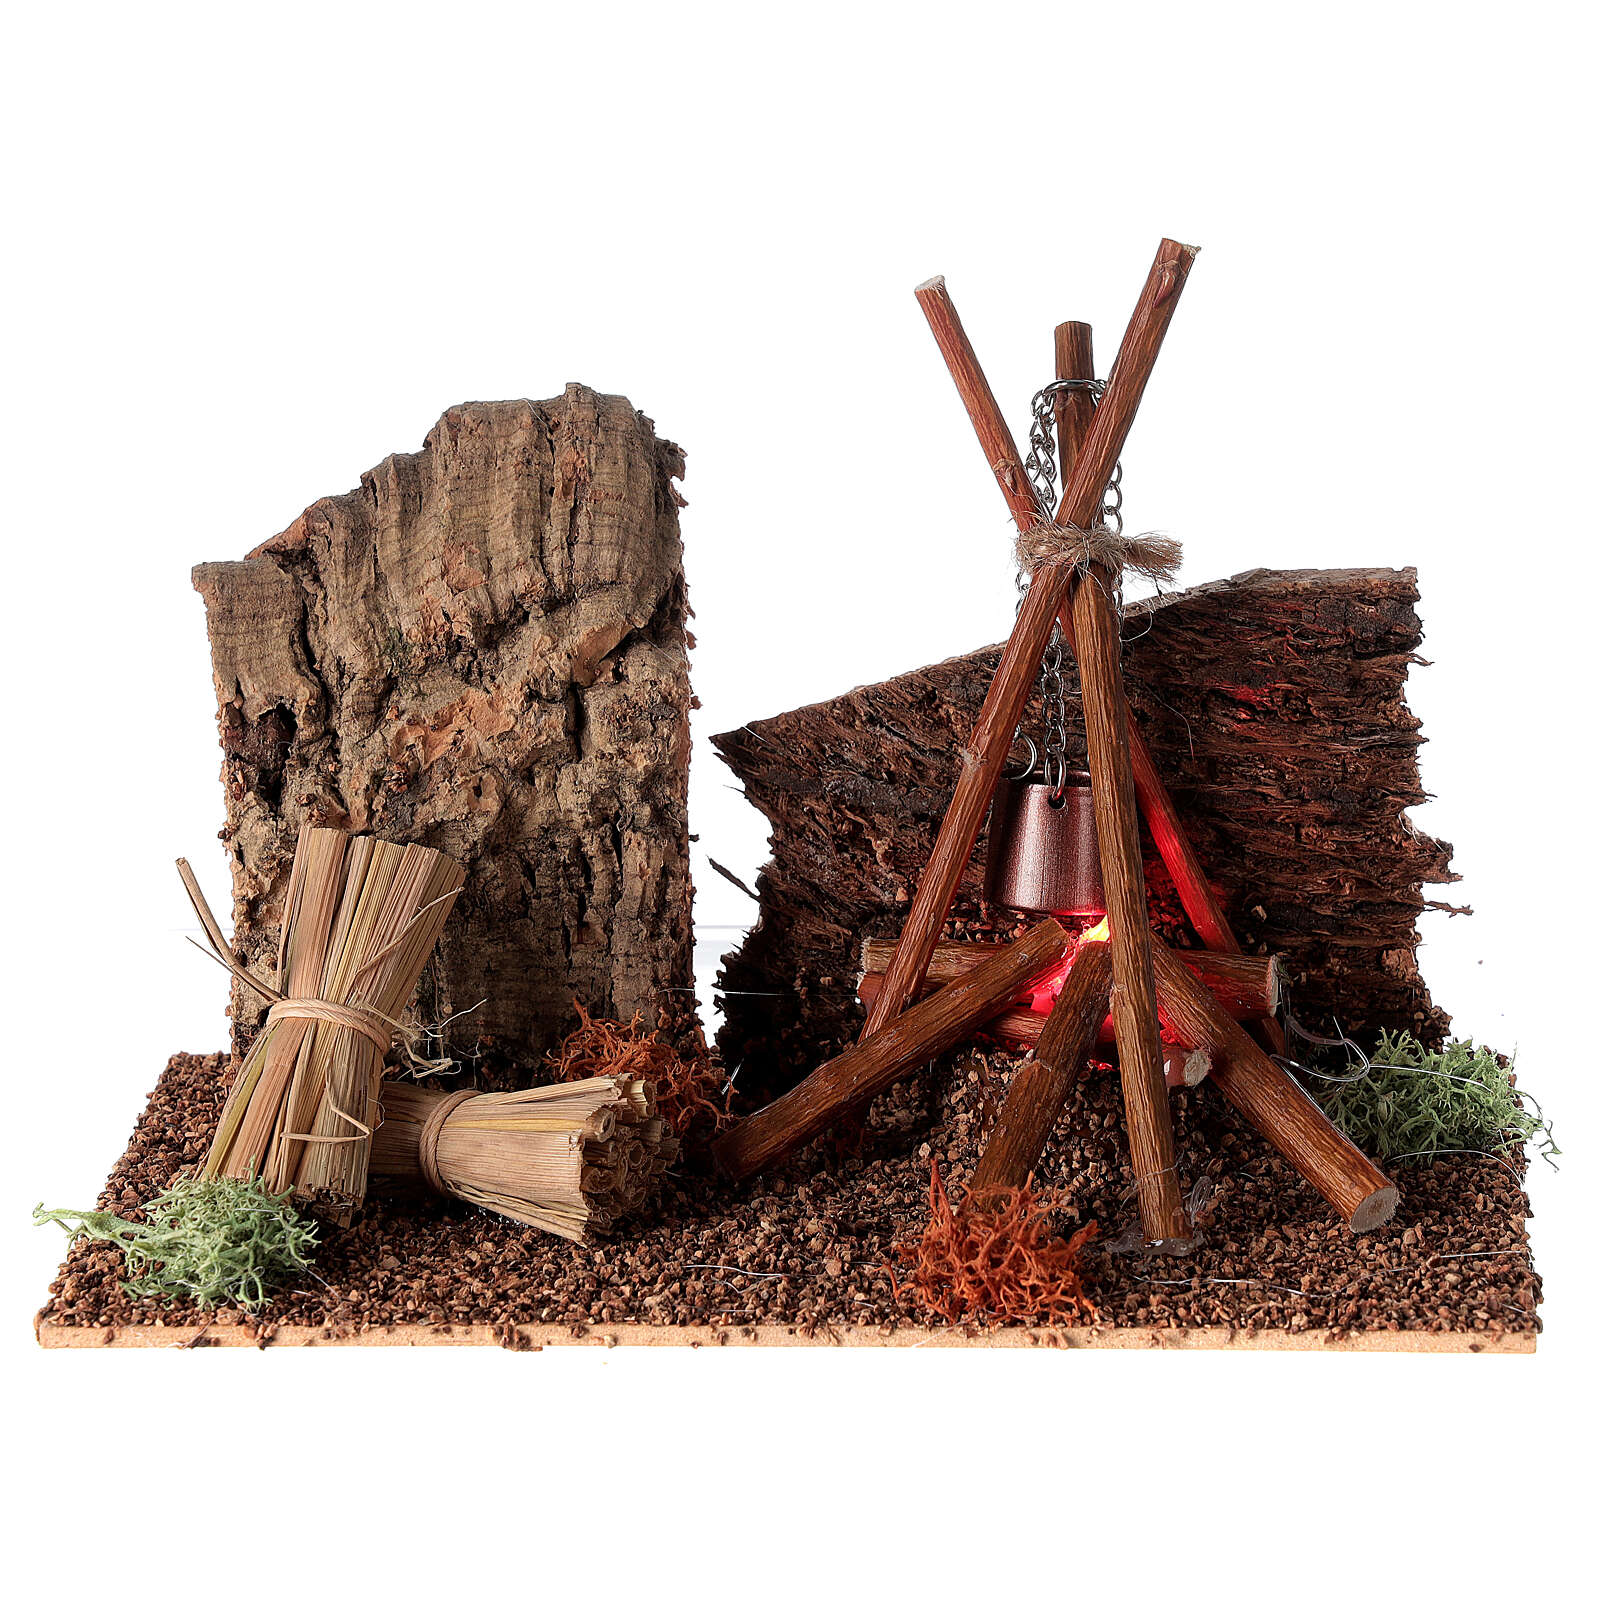 Firecamp with pot for Nativity Scene with 8-10 cm figurines 4